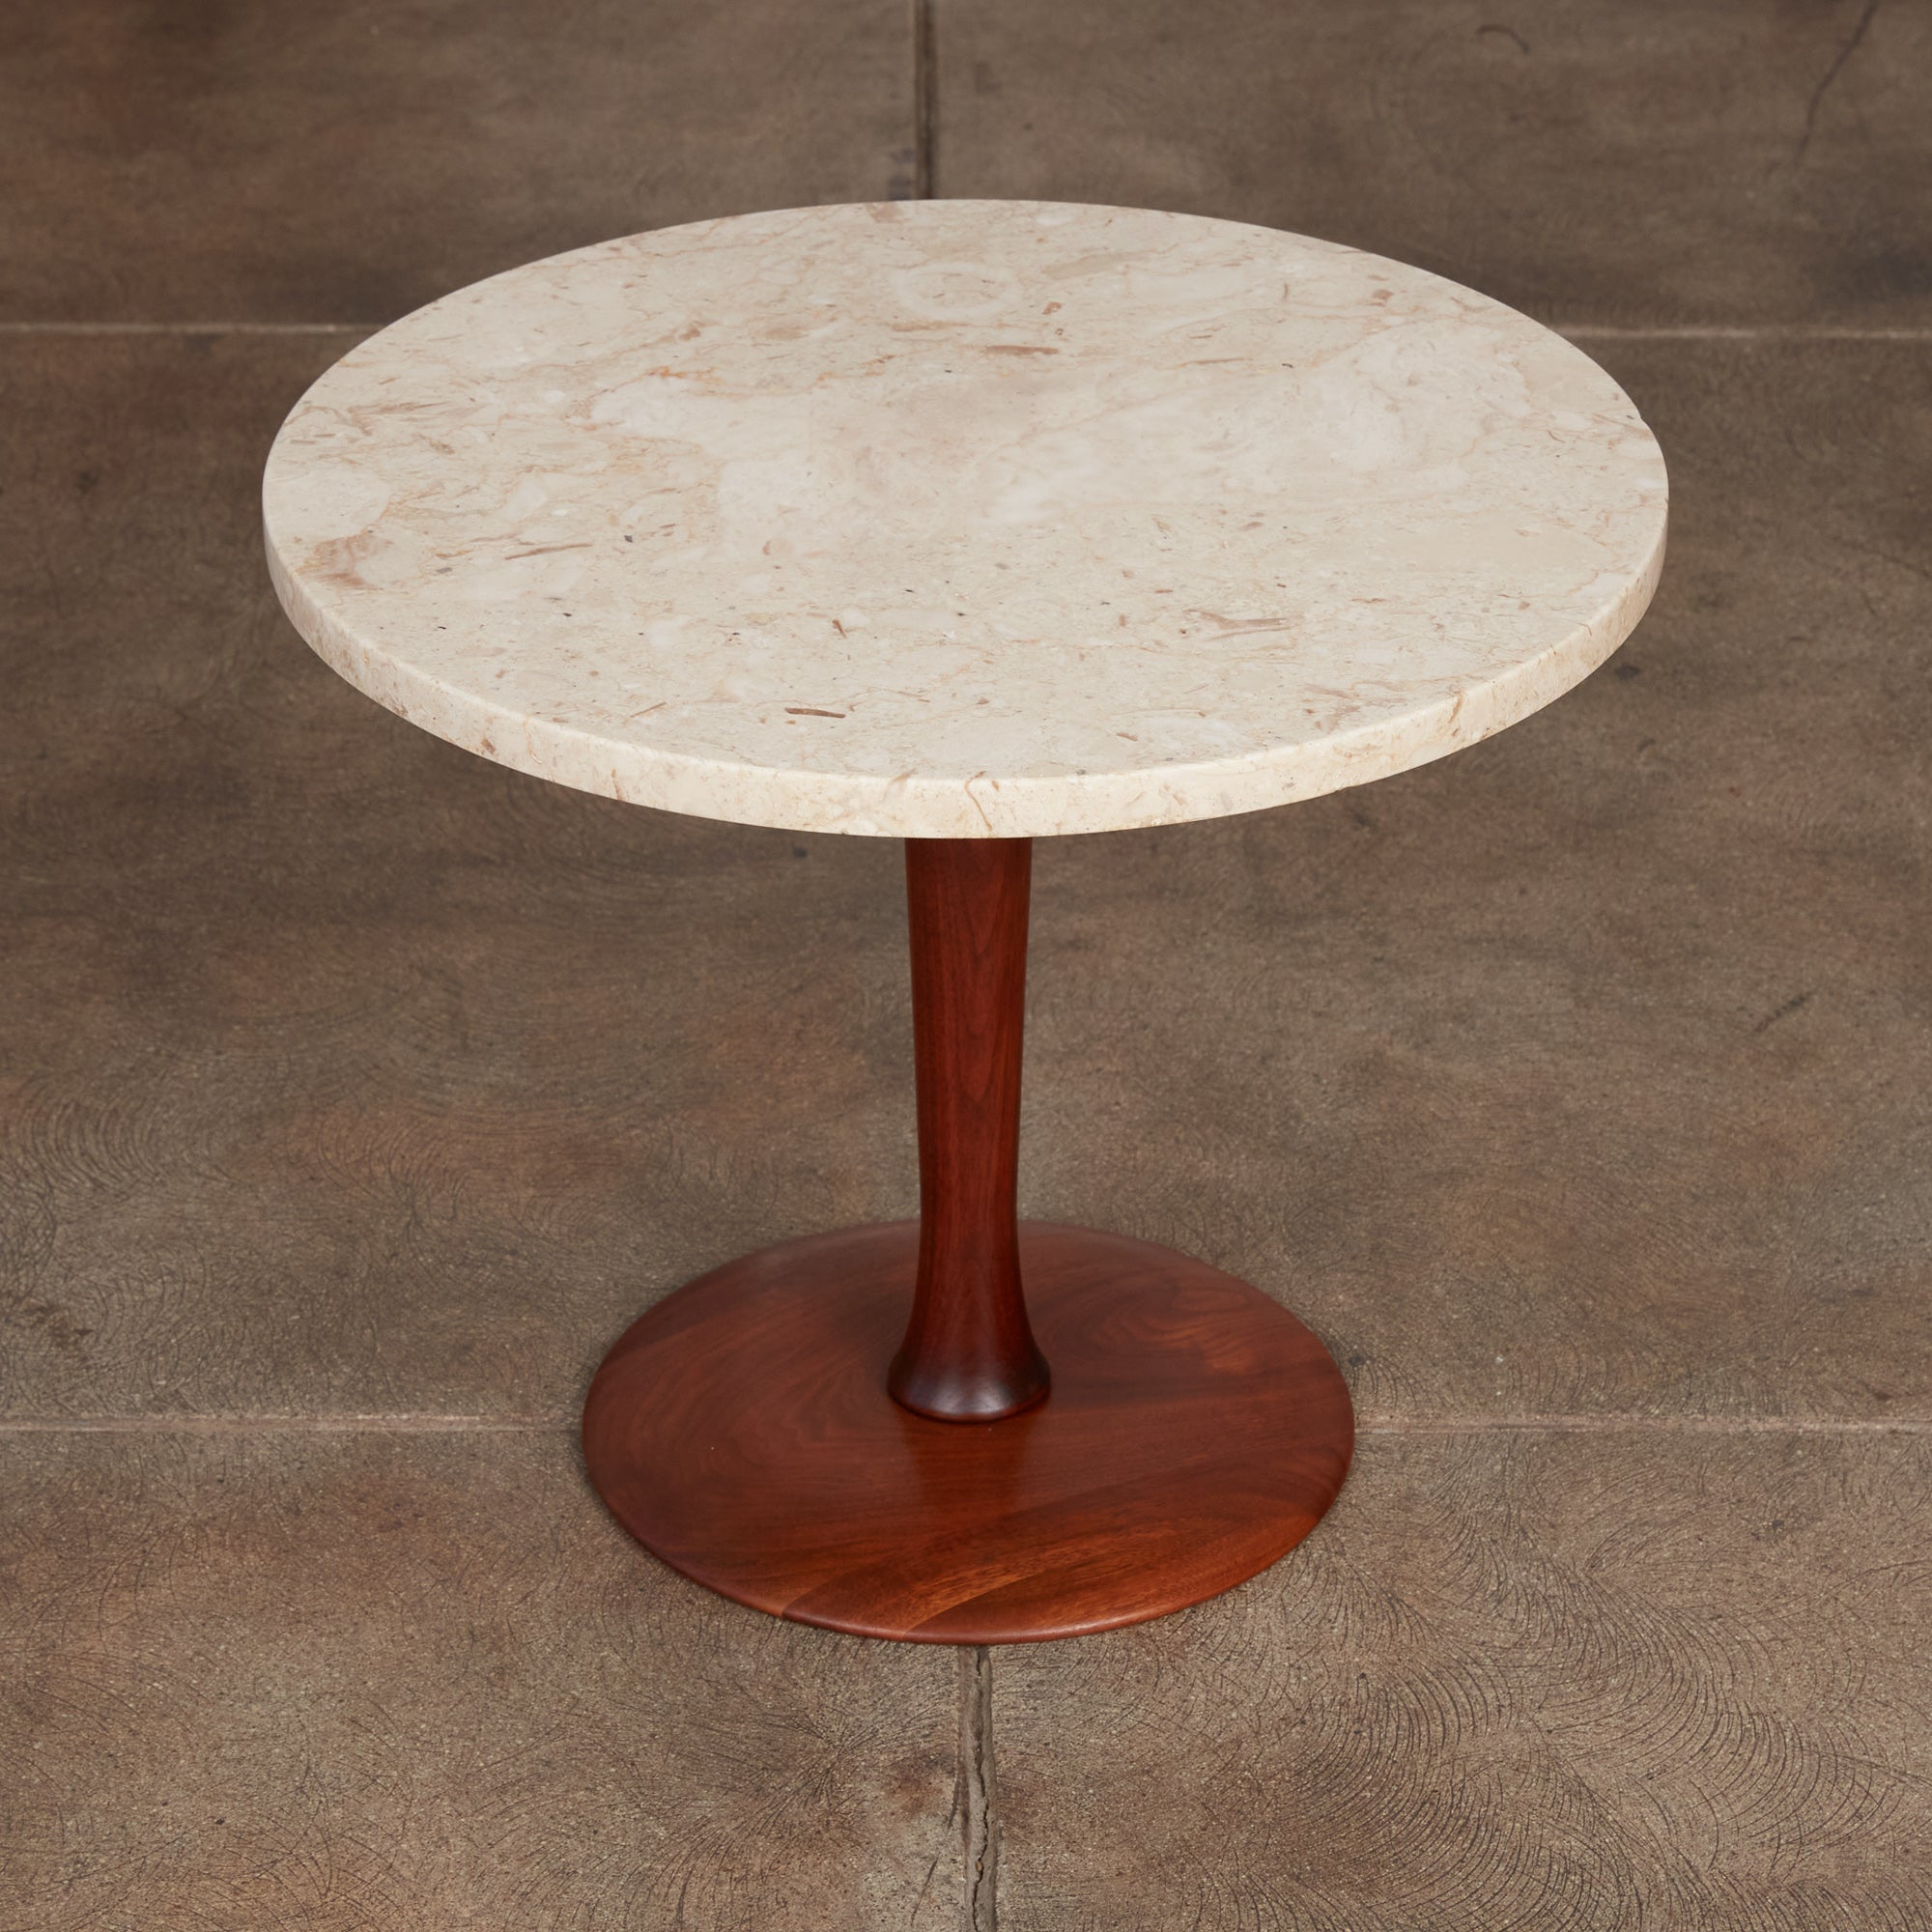 Italian Travertine Side Table with Turned Walnut Base